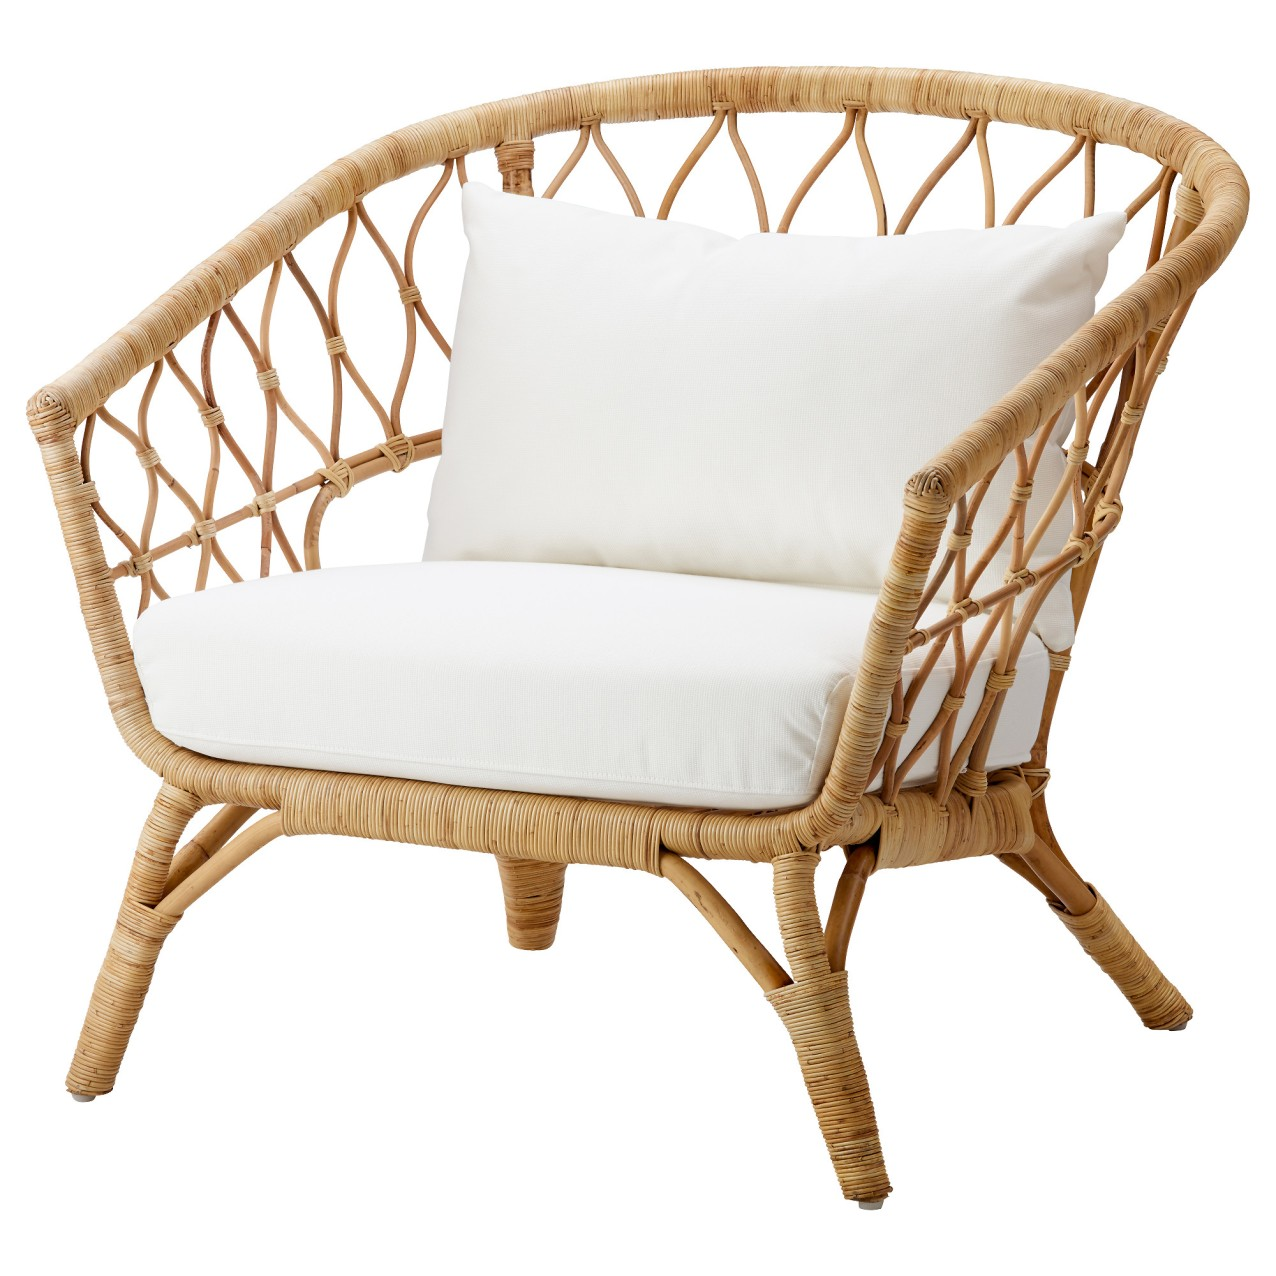 Armchair with cushion - Stockholm £175